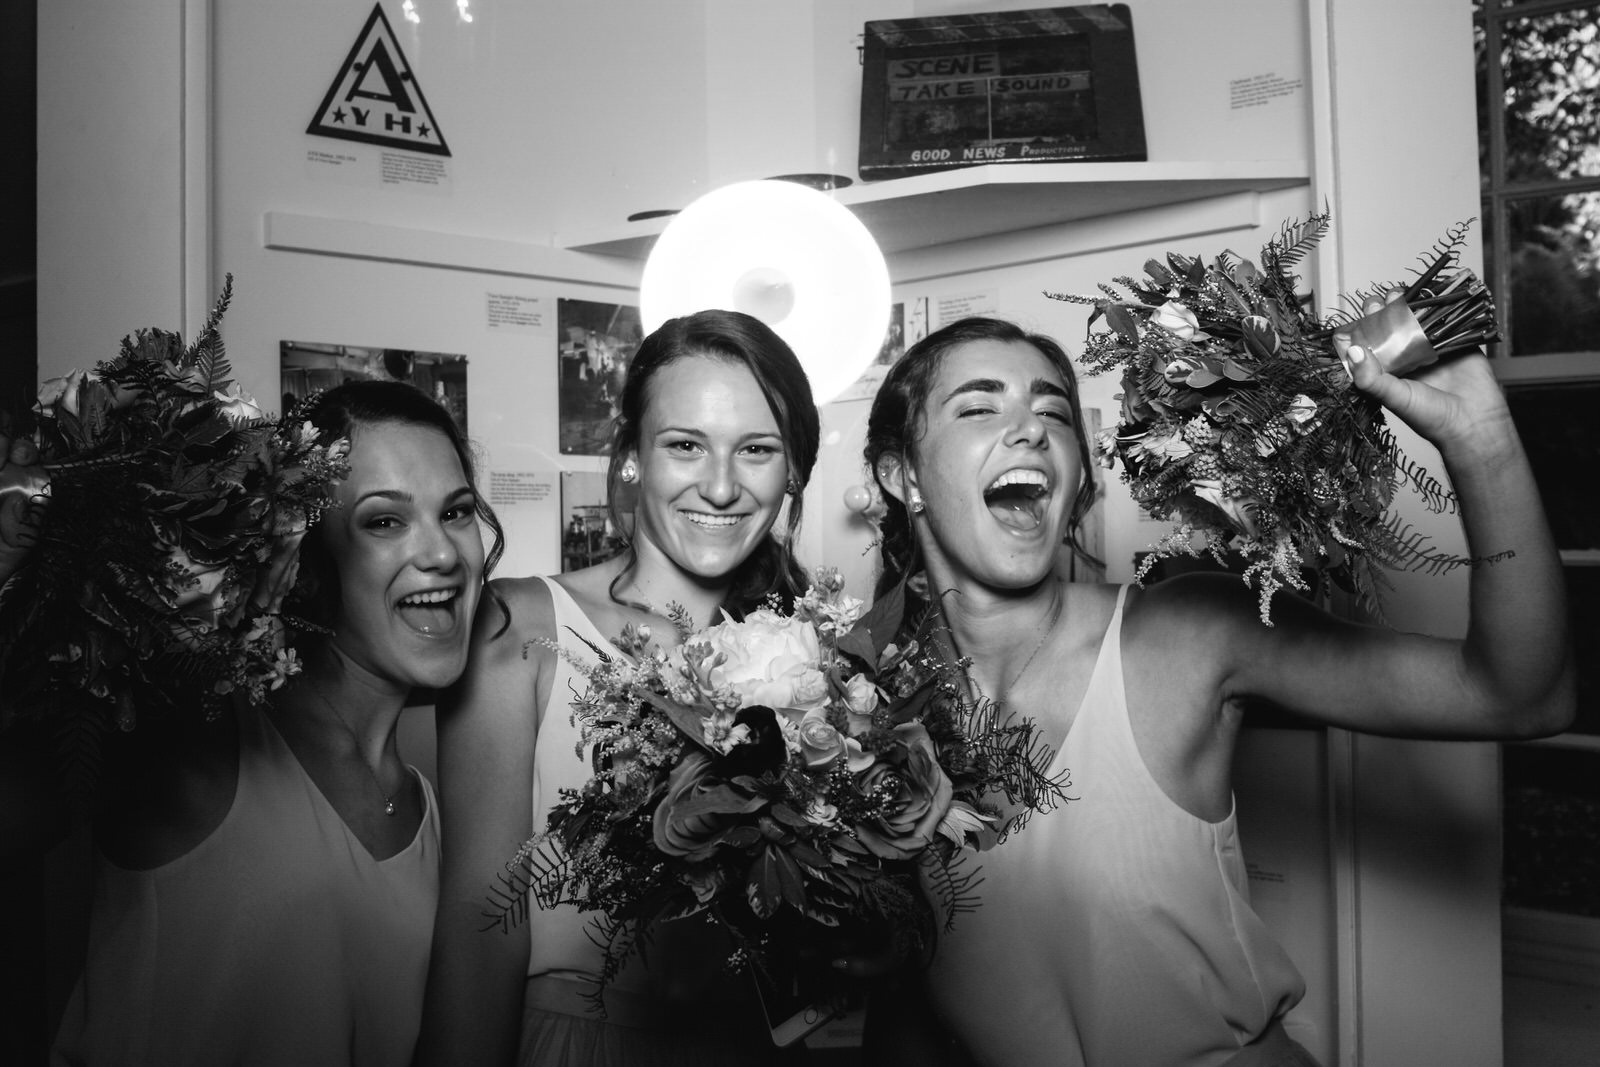 Richard-Donna-Wedding-Photo-Booth-2.jpg